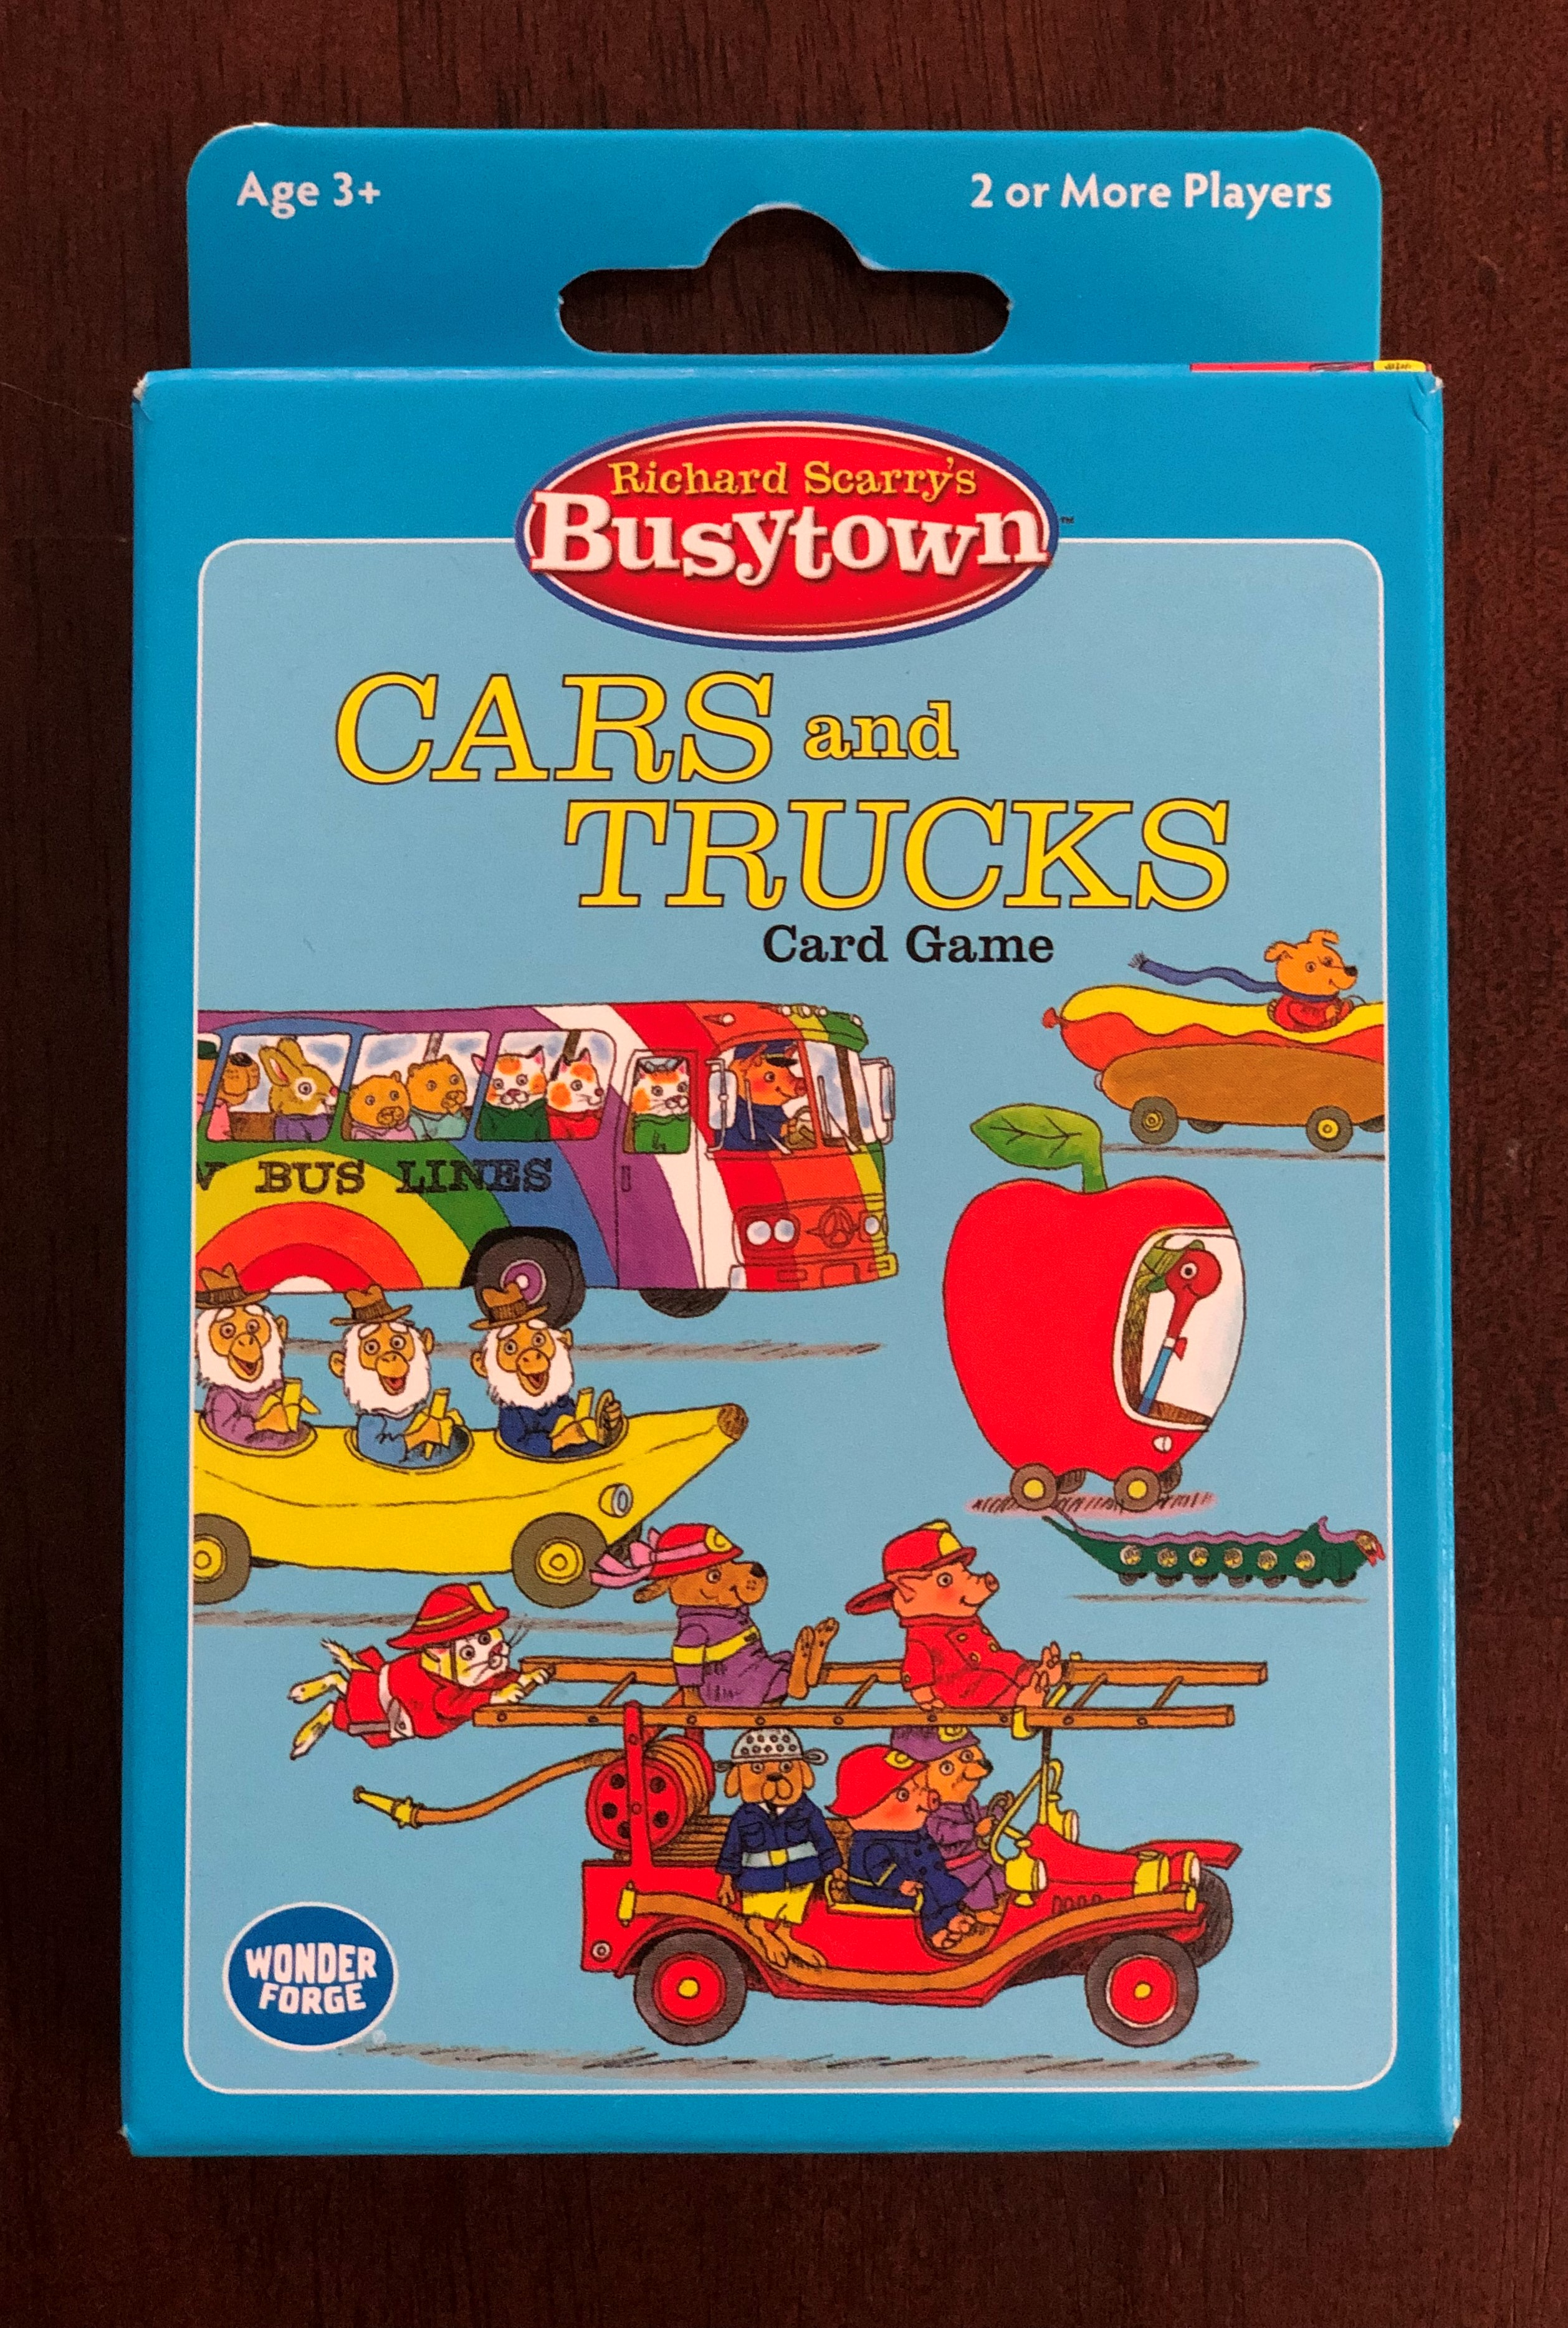 Busytown Cars and Trucks